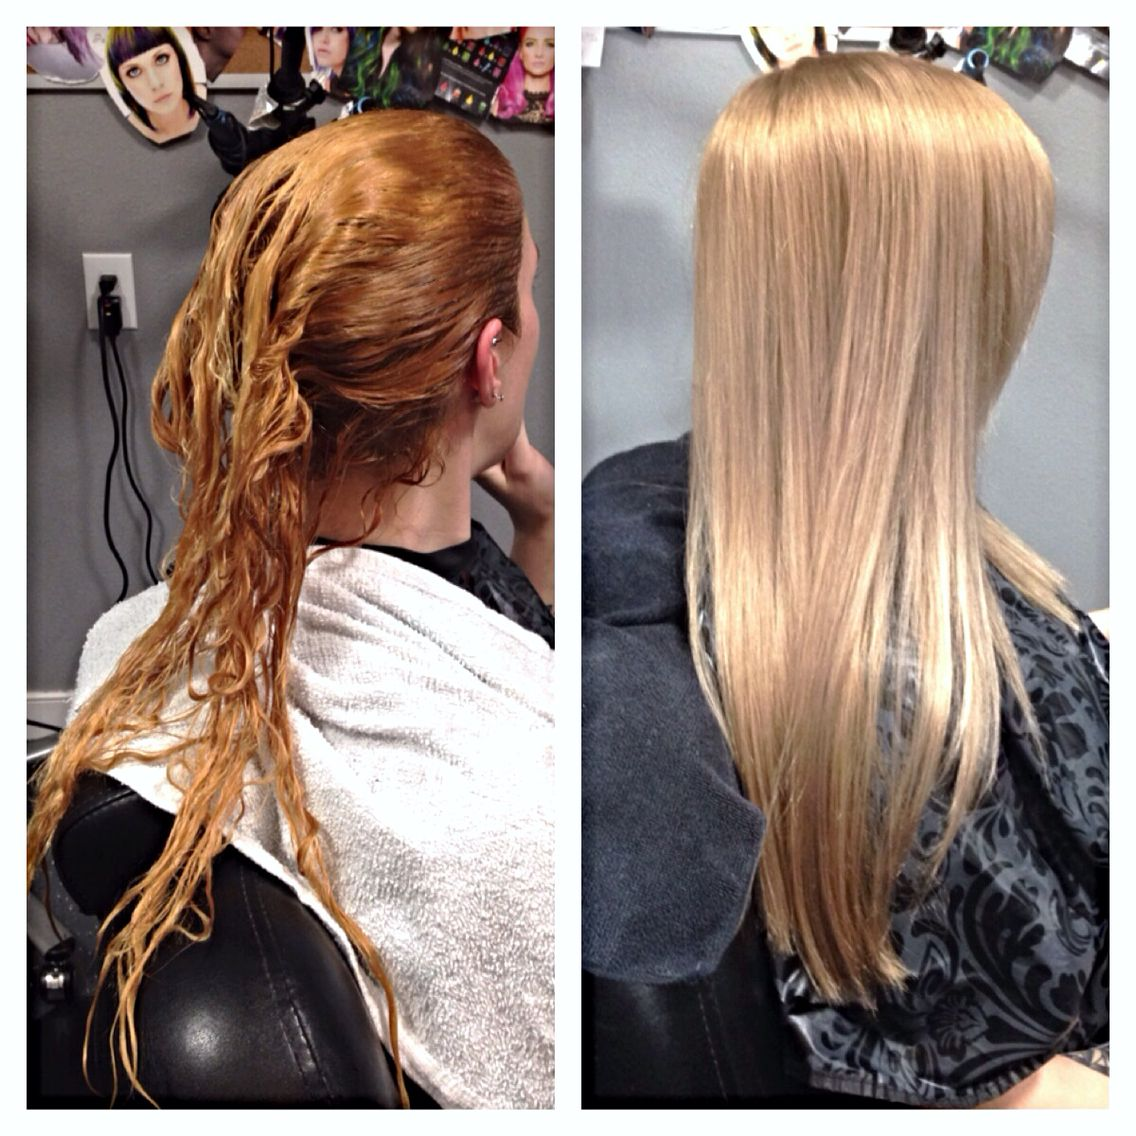 Massive Corrective Color For This Natural Blonde Who Has Box Dyed